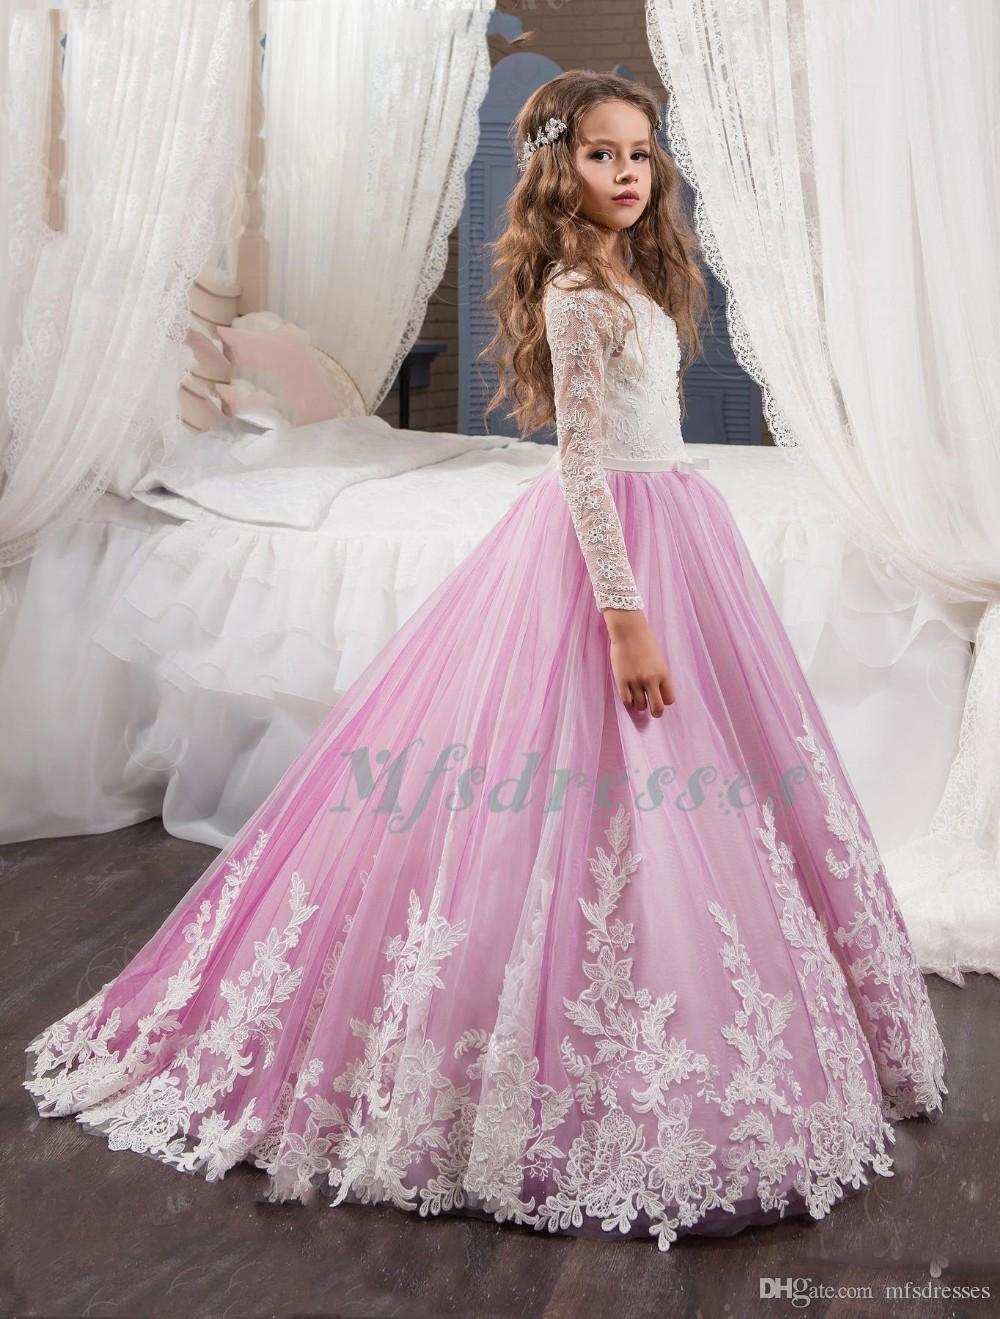 2017 New Desigin Party Formal Ivory Pink Flower Girl Dress Baby Pageant Gowns Girls Birthday Communion Toddler Kids TuTu Dress for Weddings